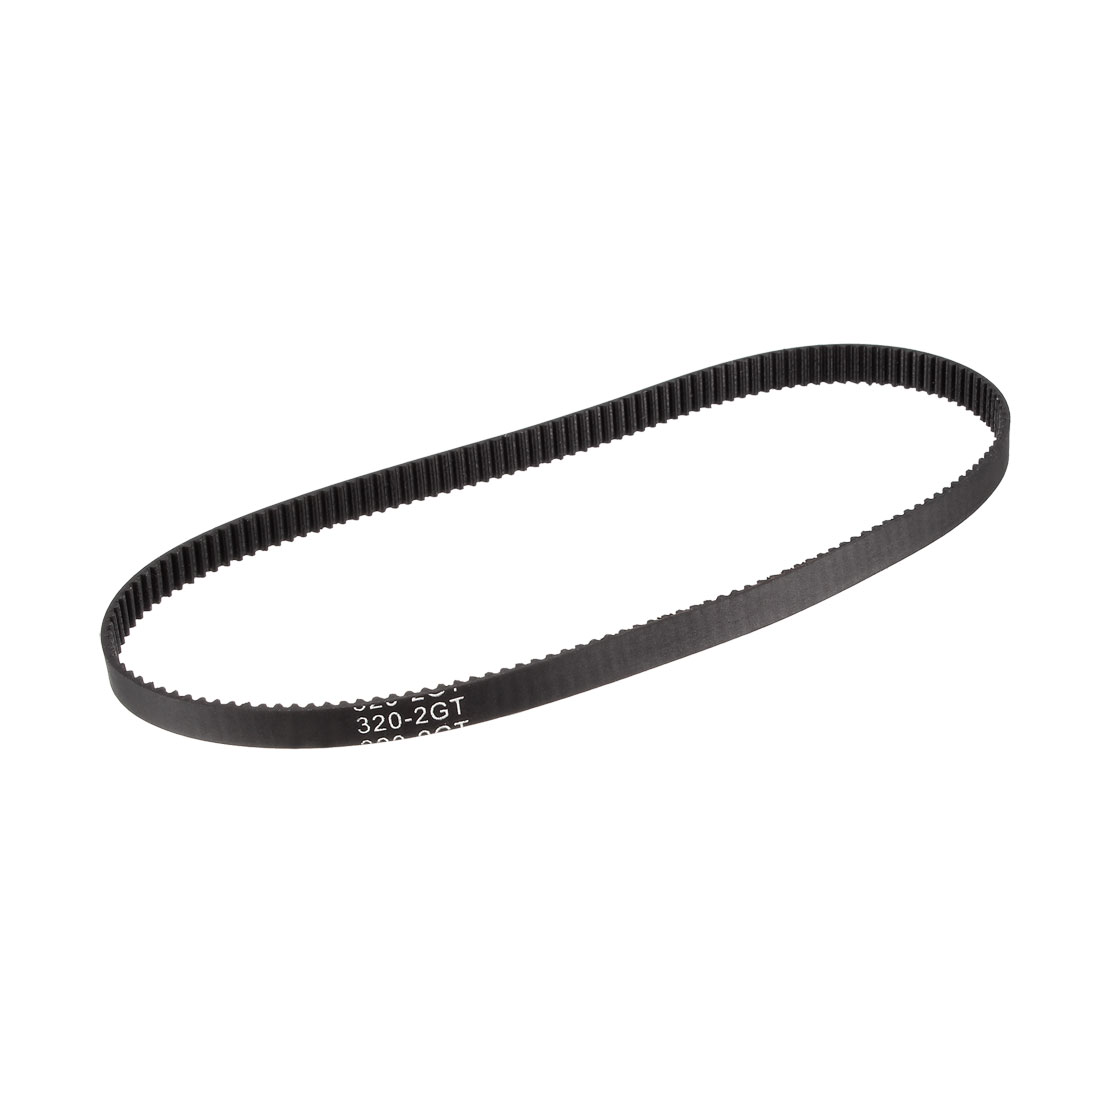 GT2 Timing Belt 320mm Closed Fit Synchronous Wheel for 3D Printer